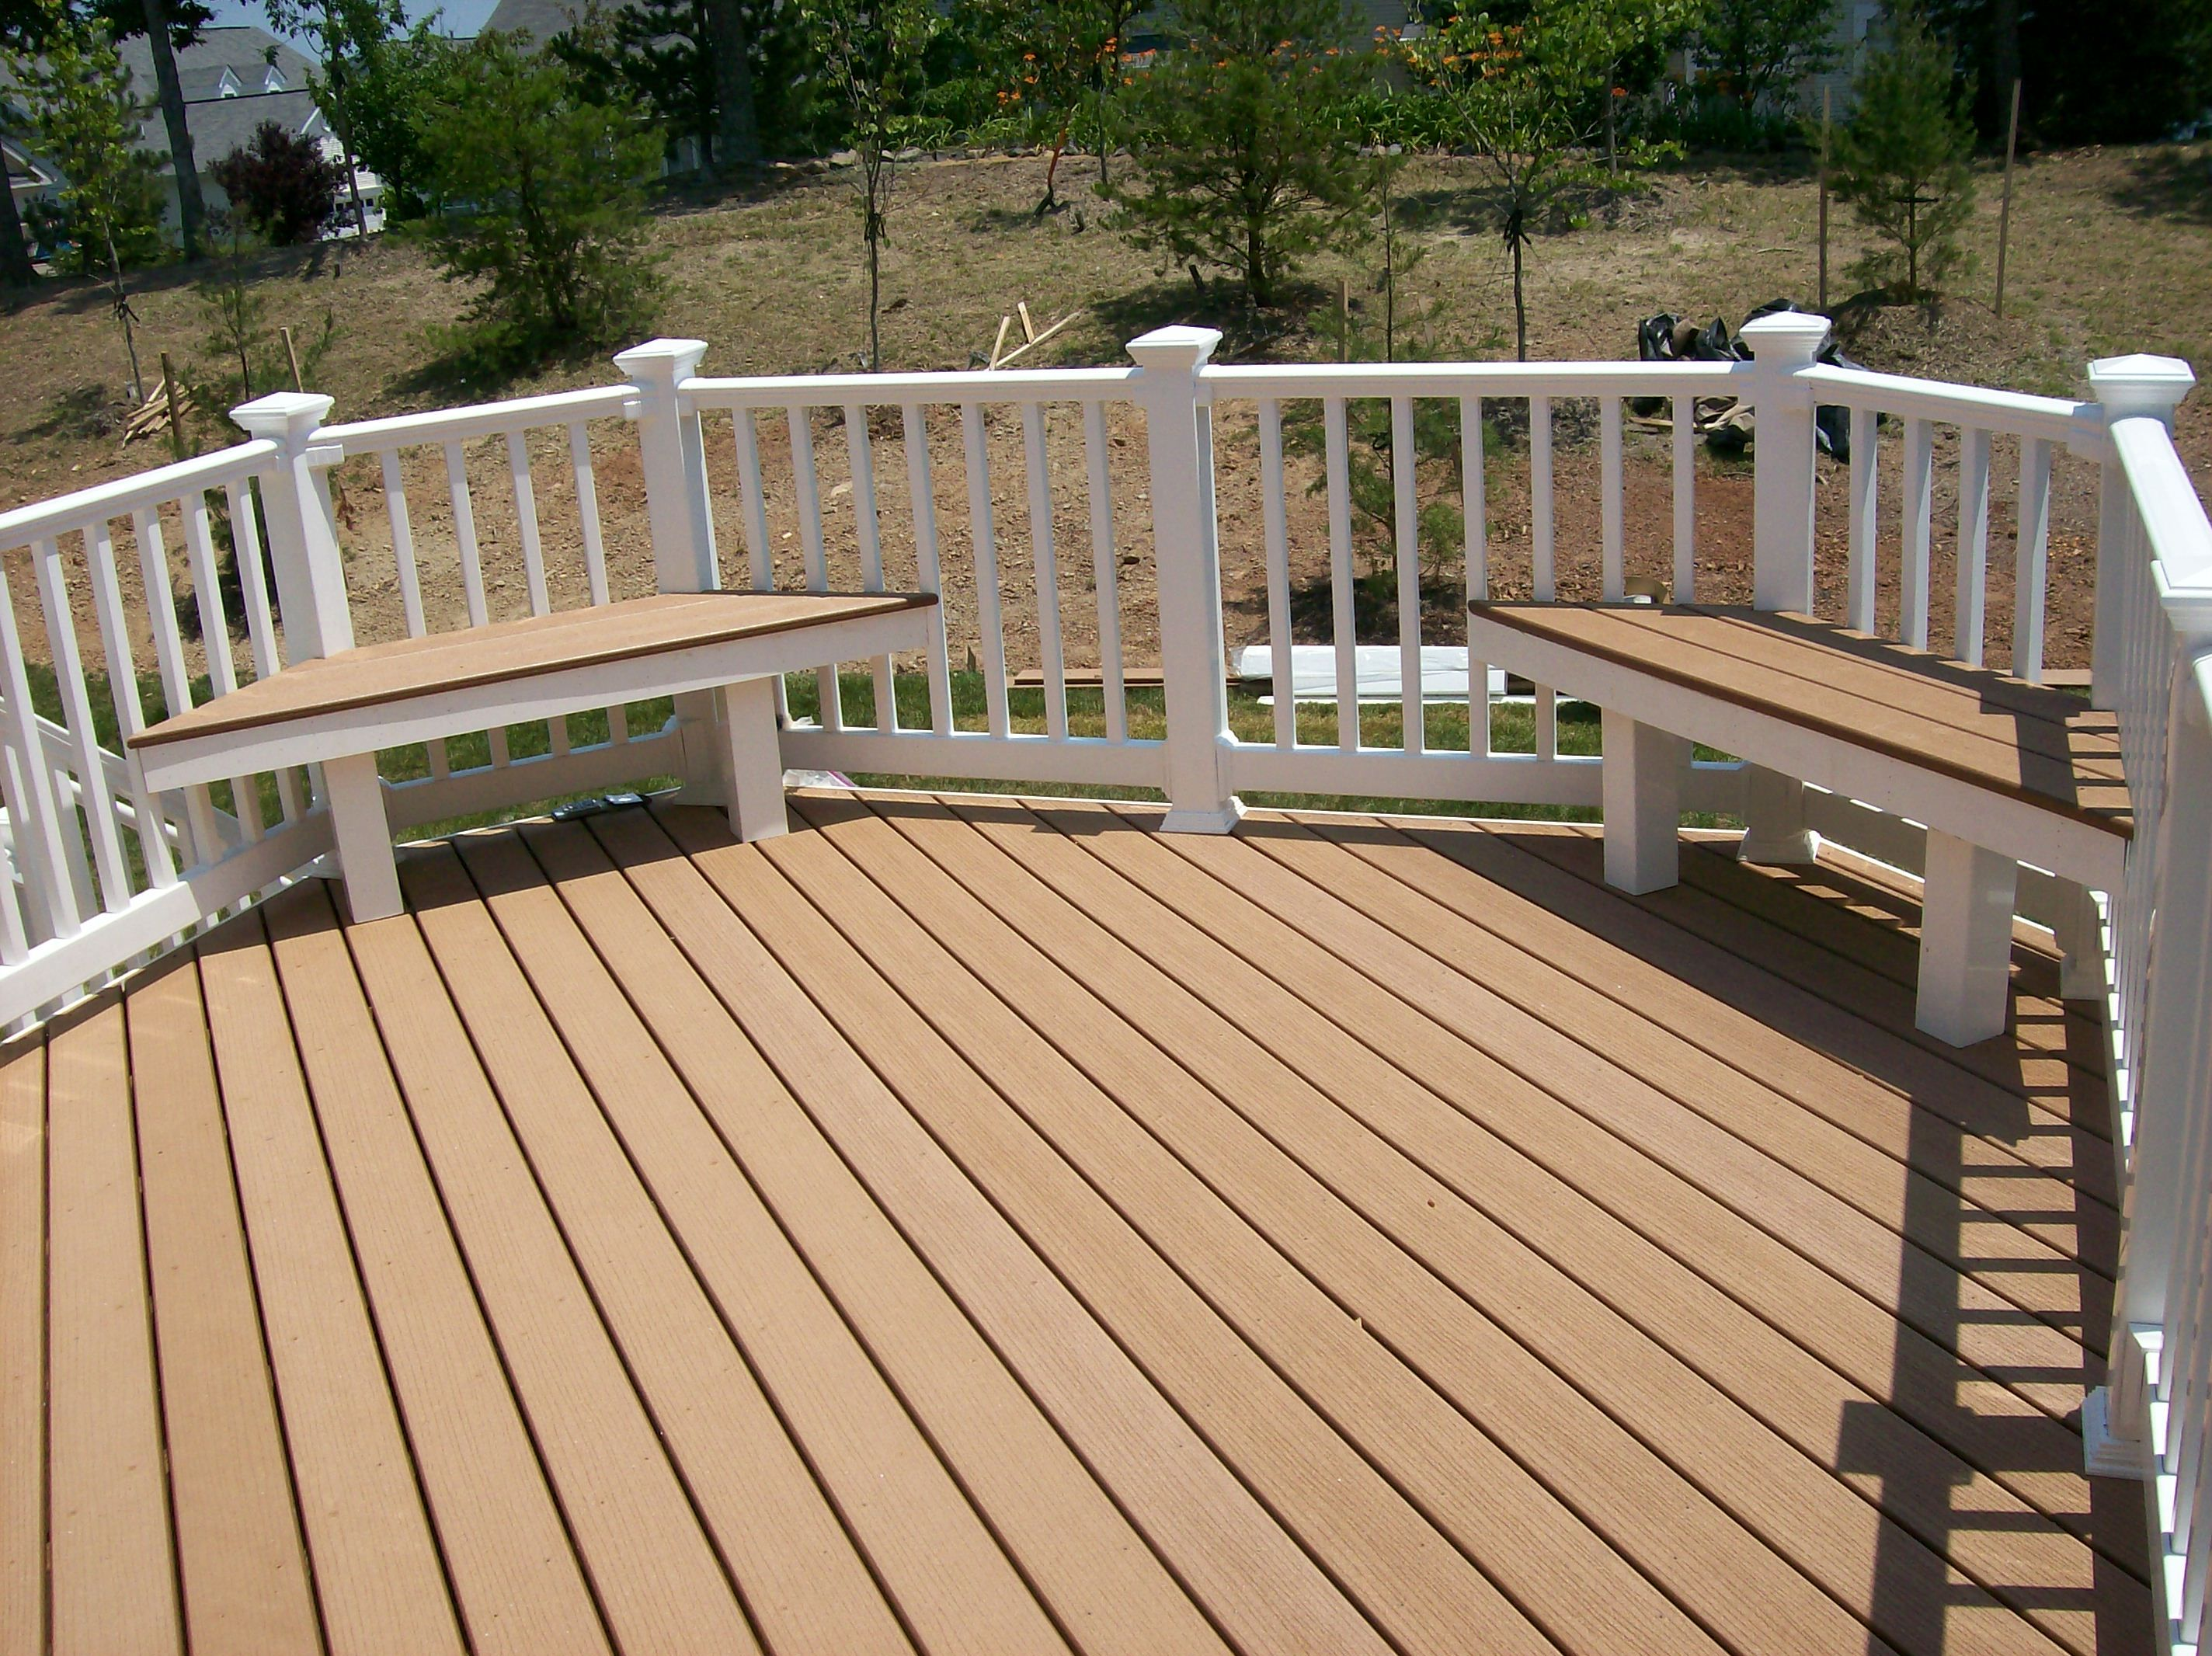 decks ideas Download Wallpaper Deck railing